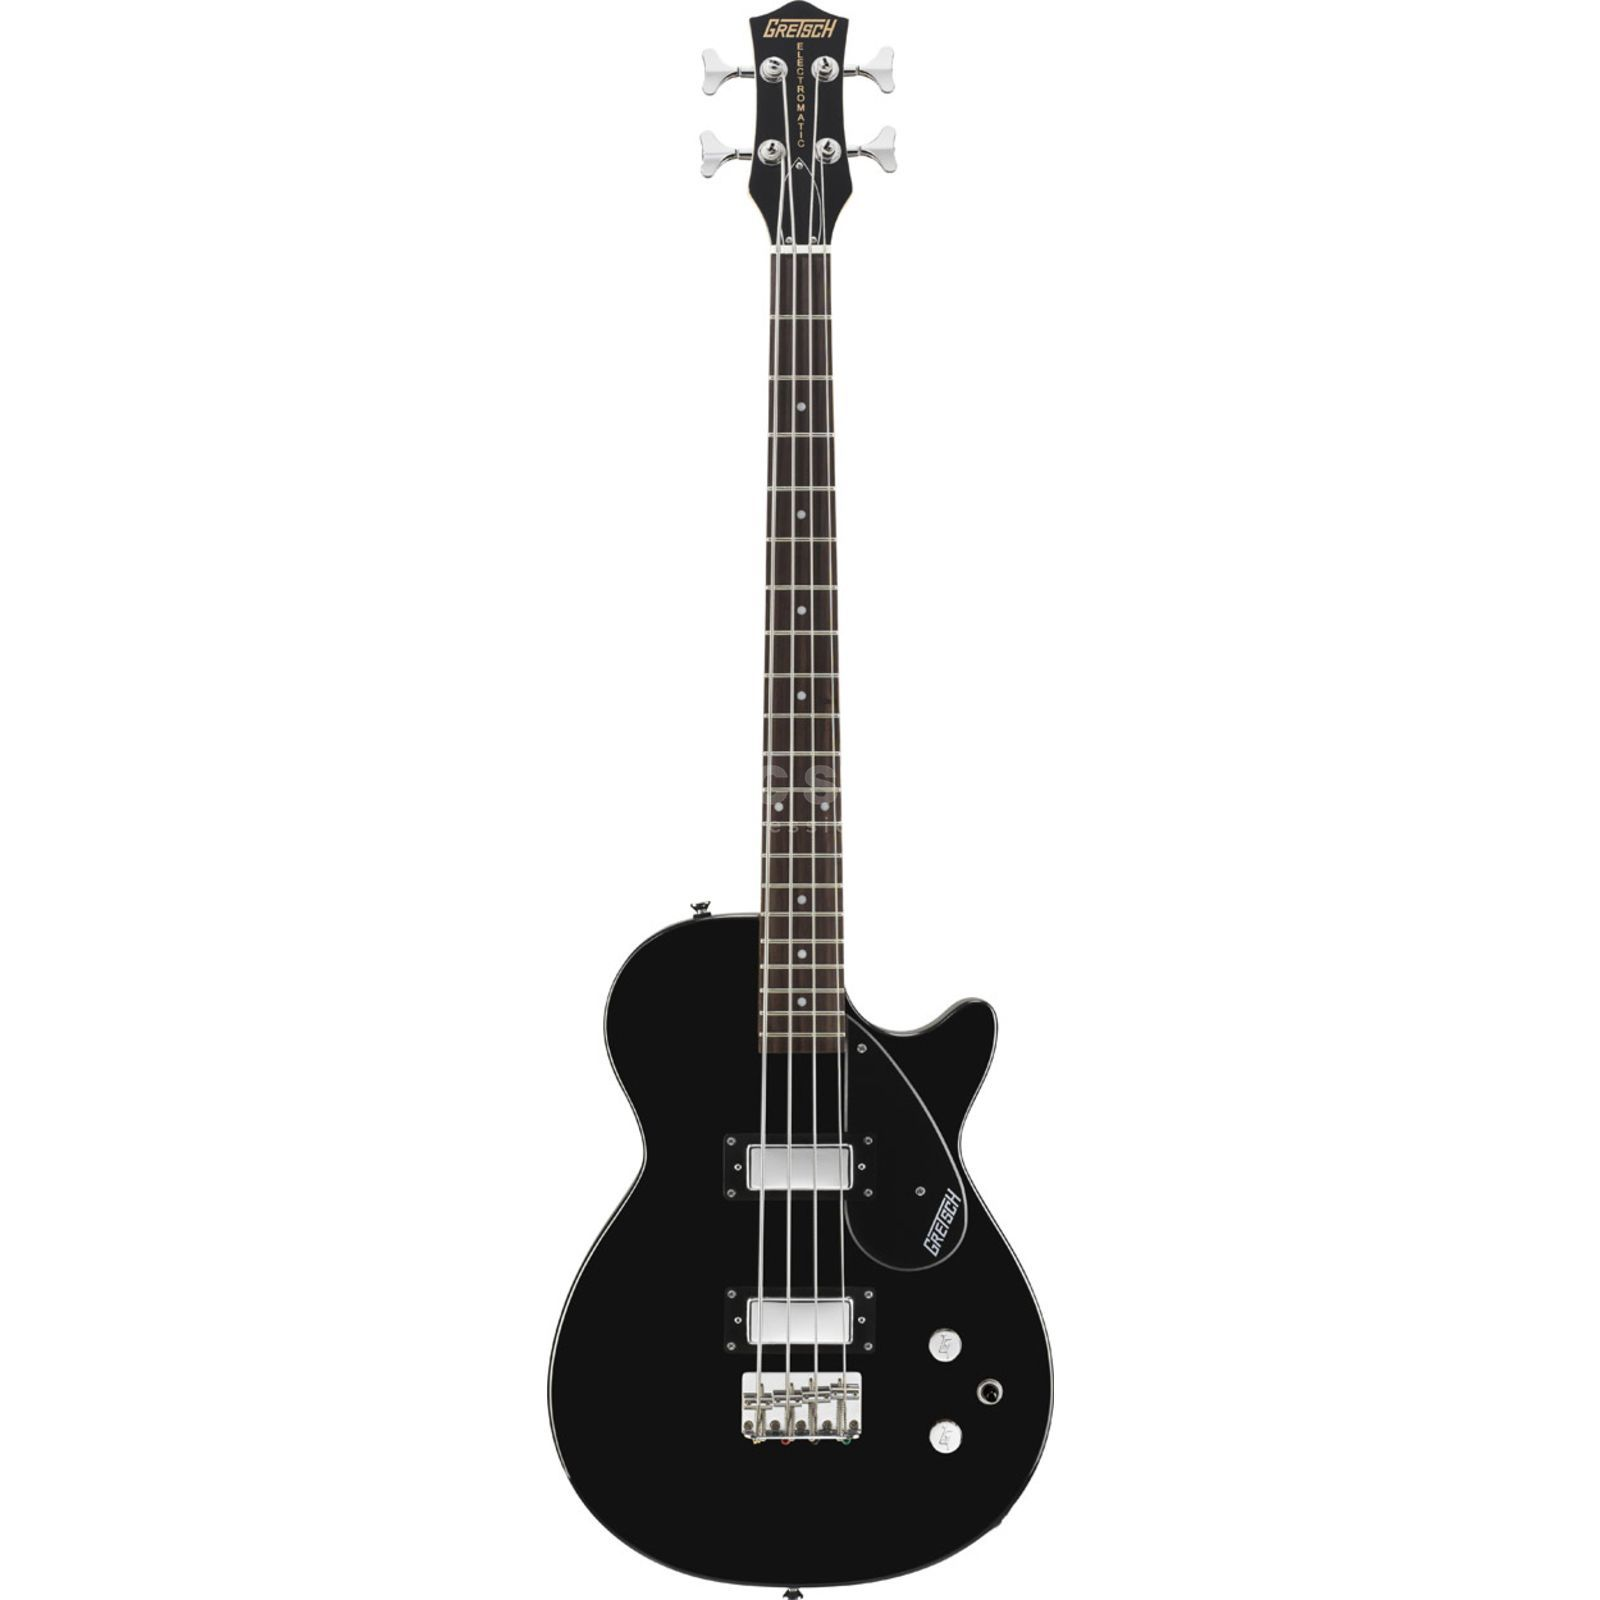 Gretsch G2220 Junior Jet II Bass Guita r, Black   Produktbillede